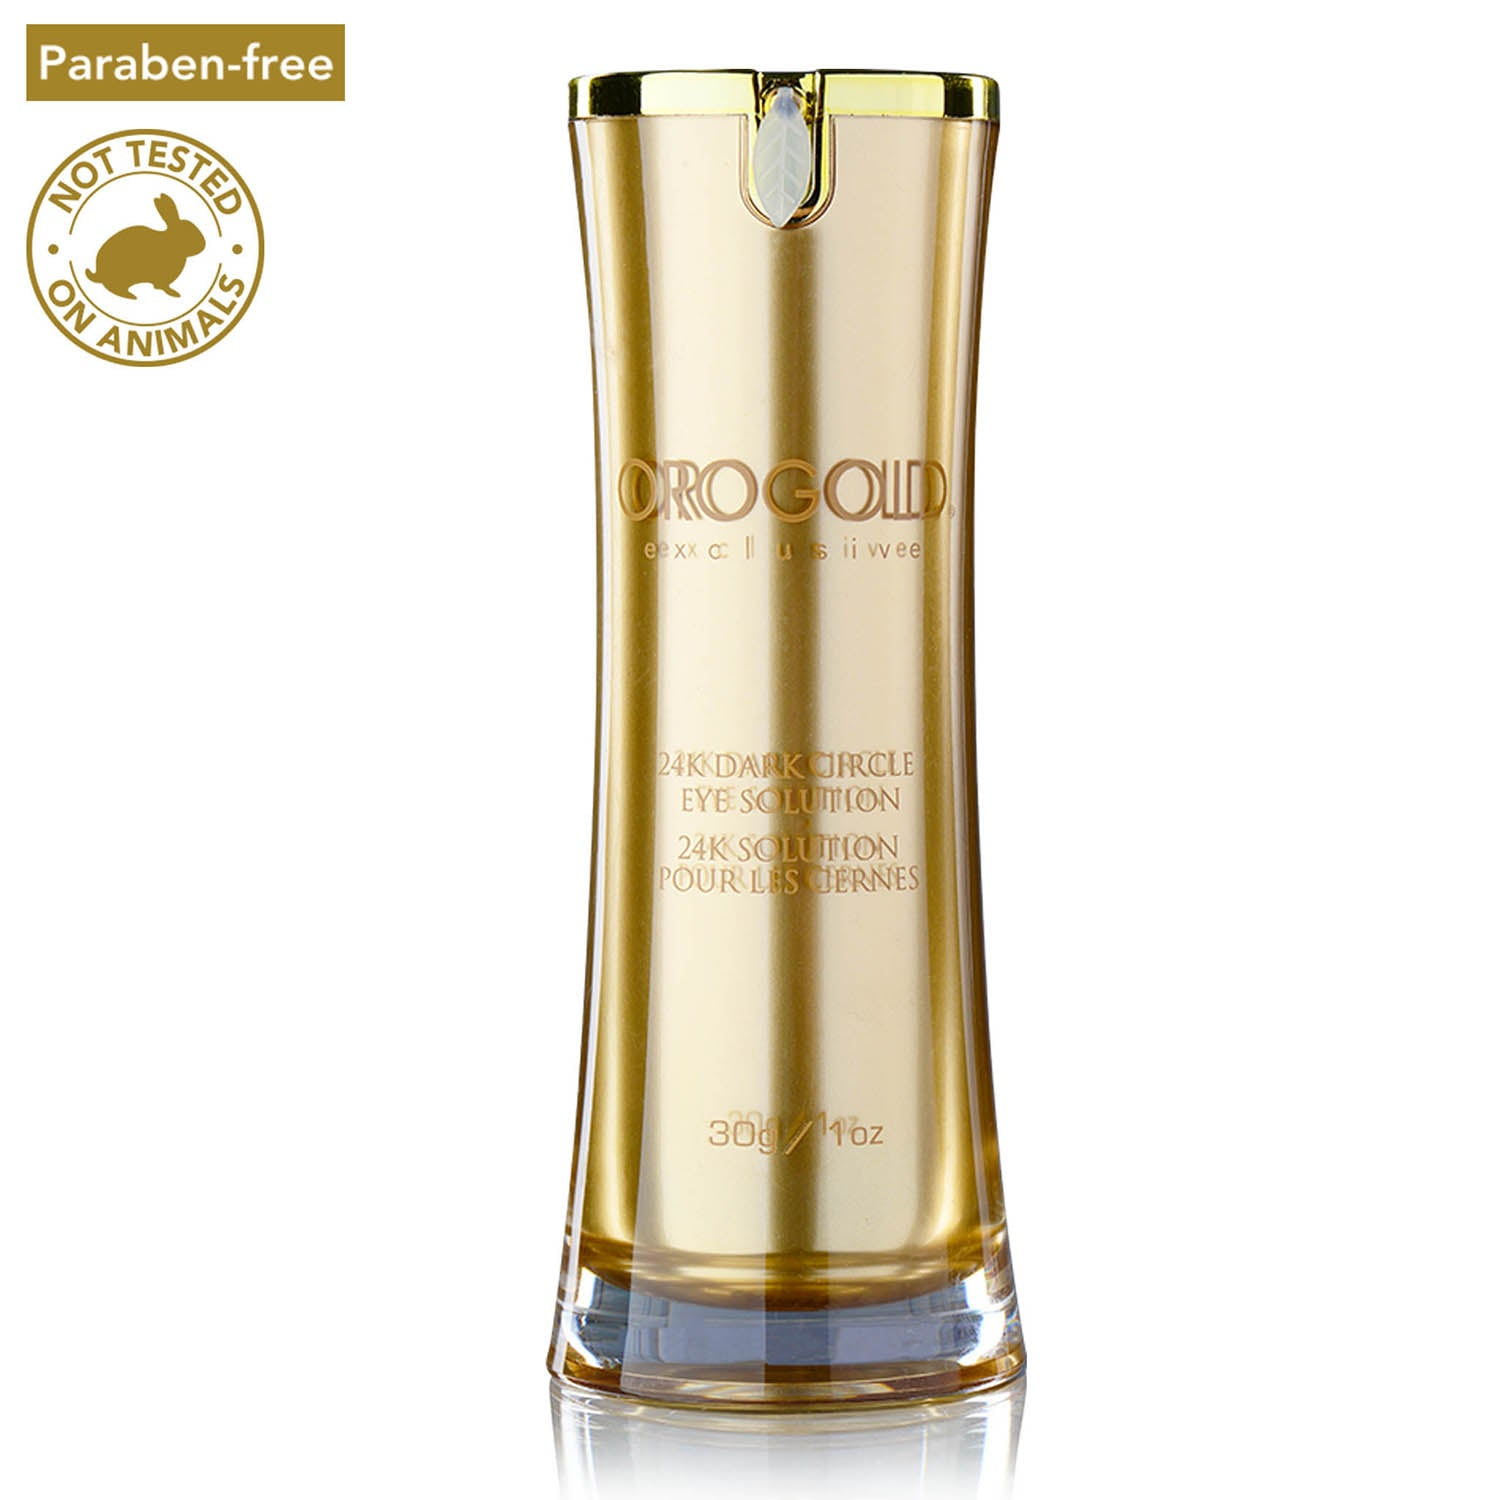 orogold 24k anti wrinkle dark circle eye solution cream